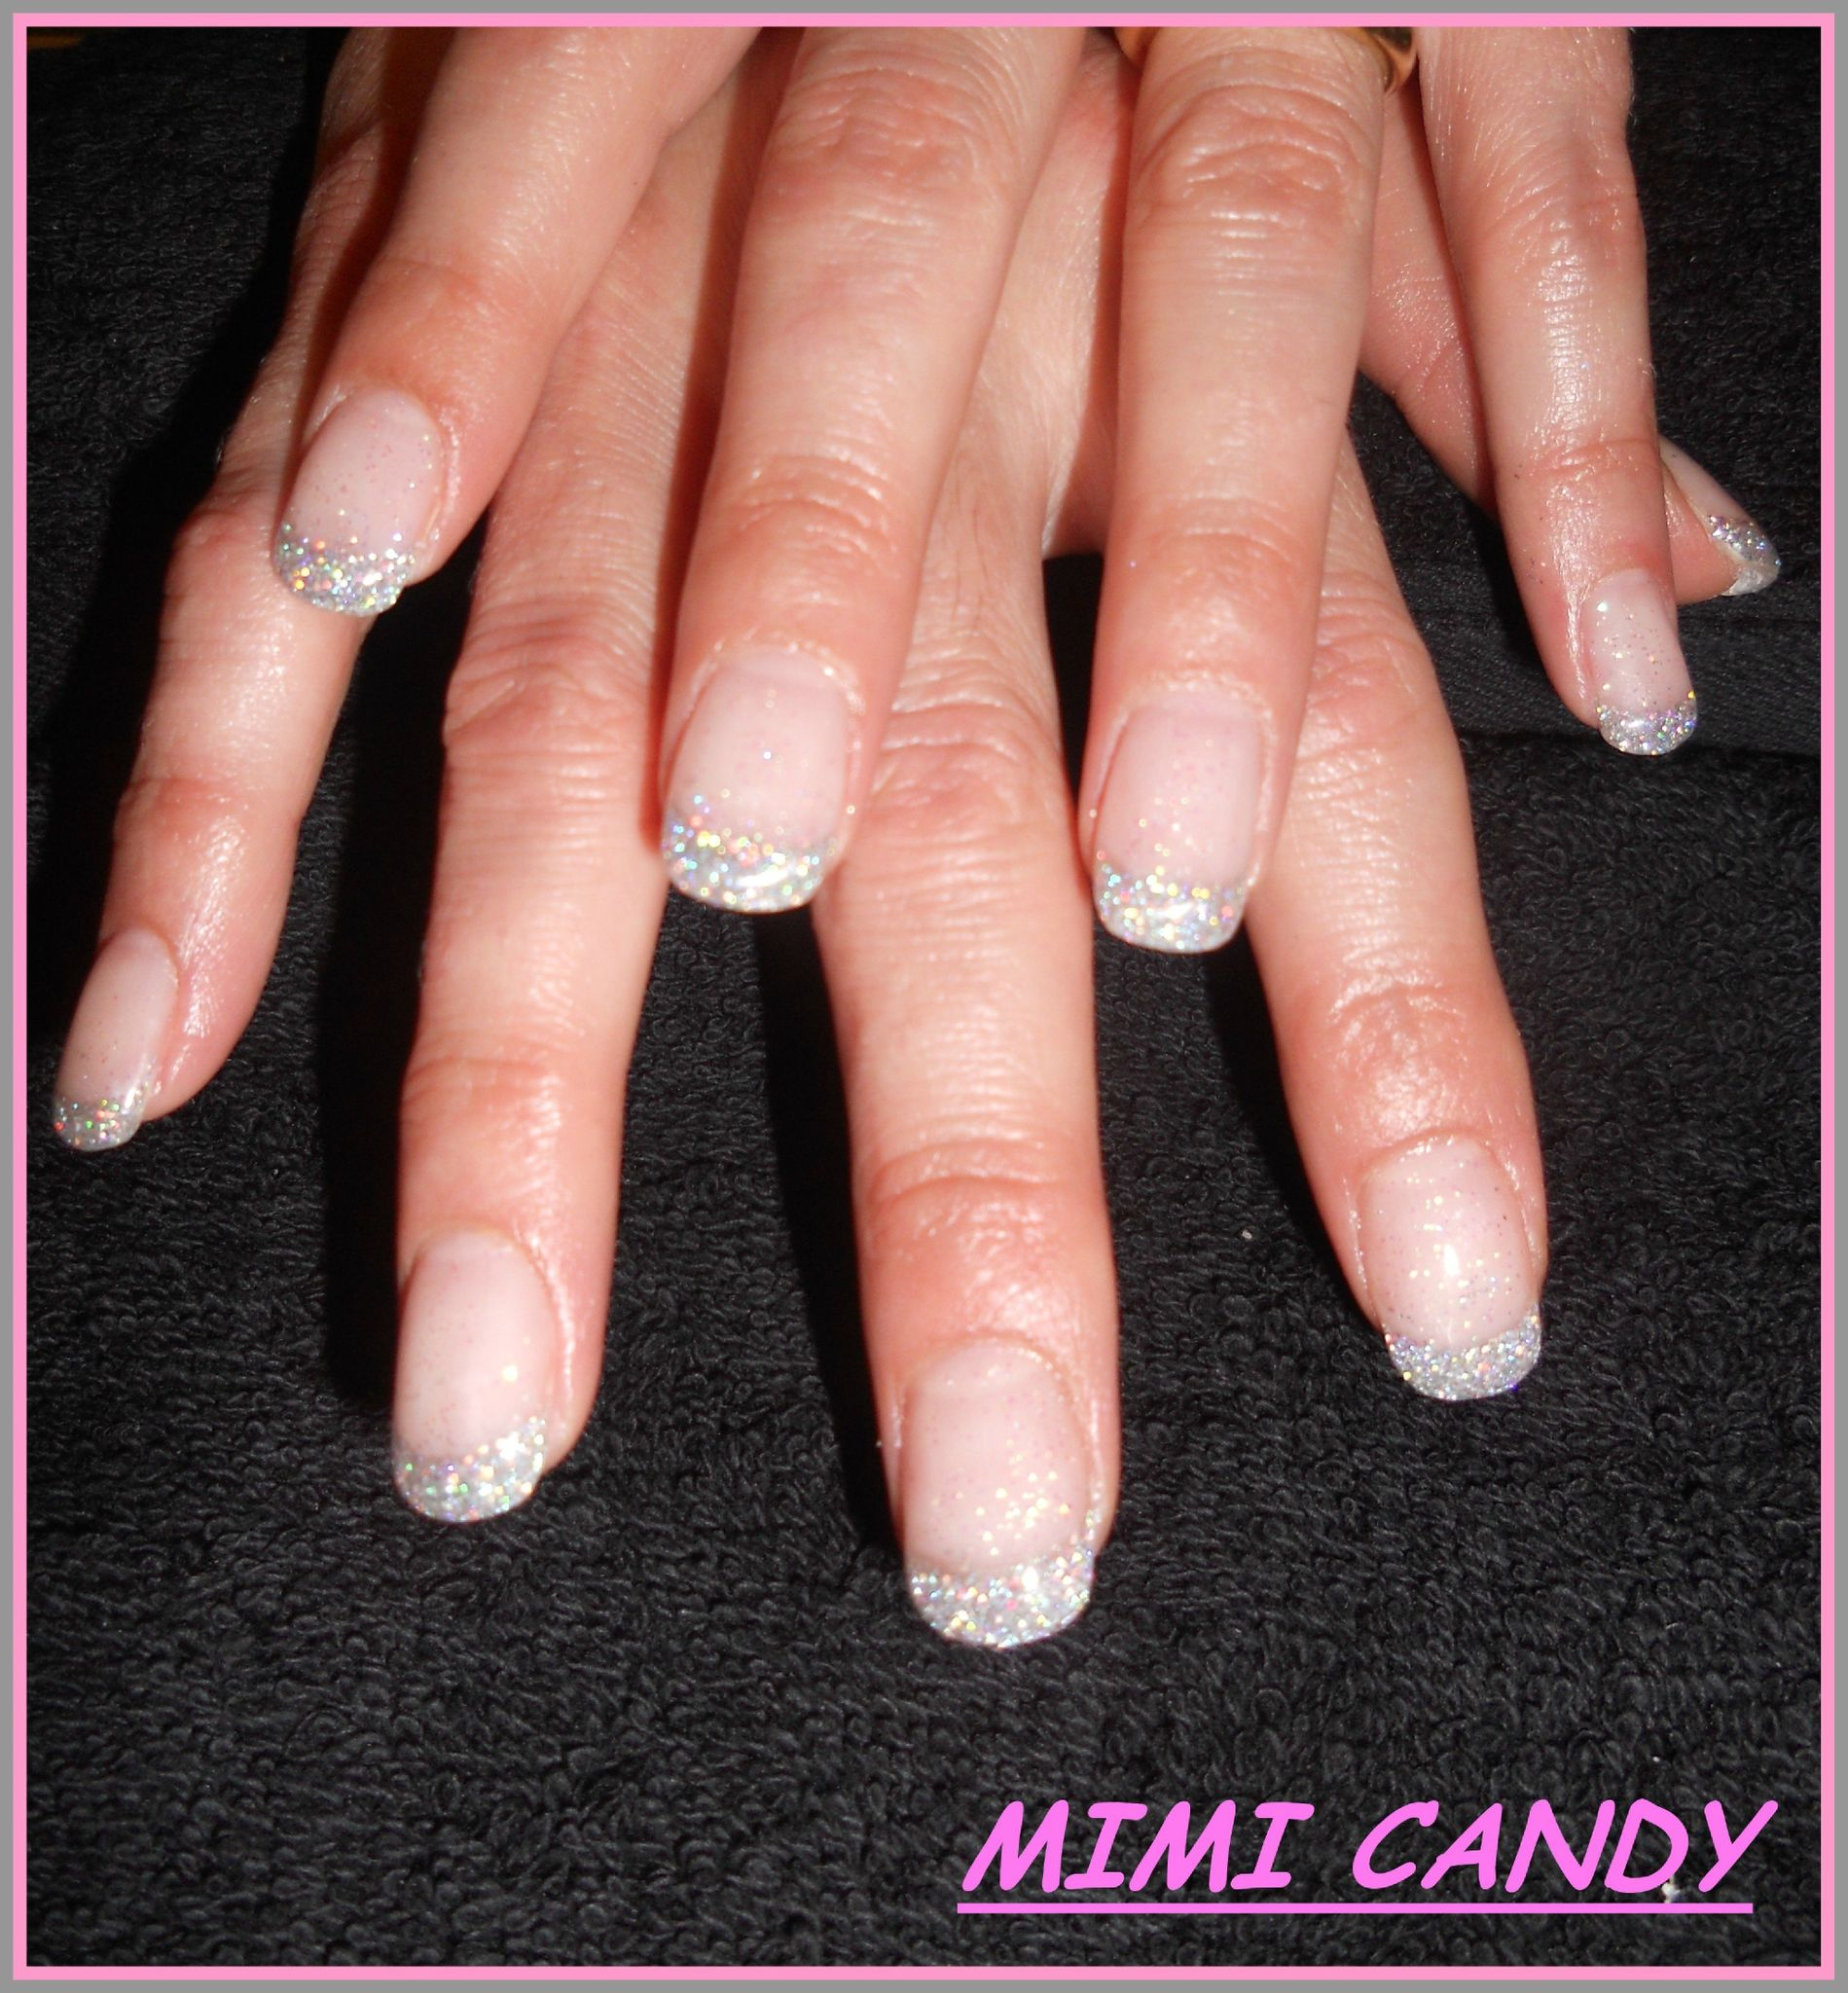 FRENCH PAILLETTES. Pose en gel sur ongles